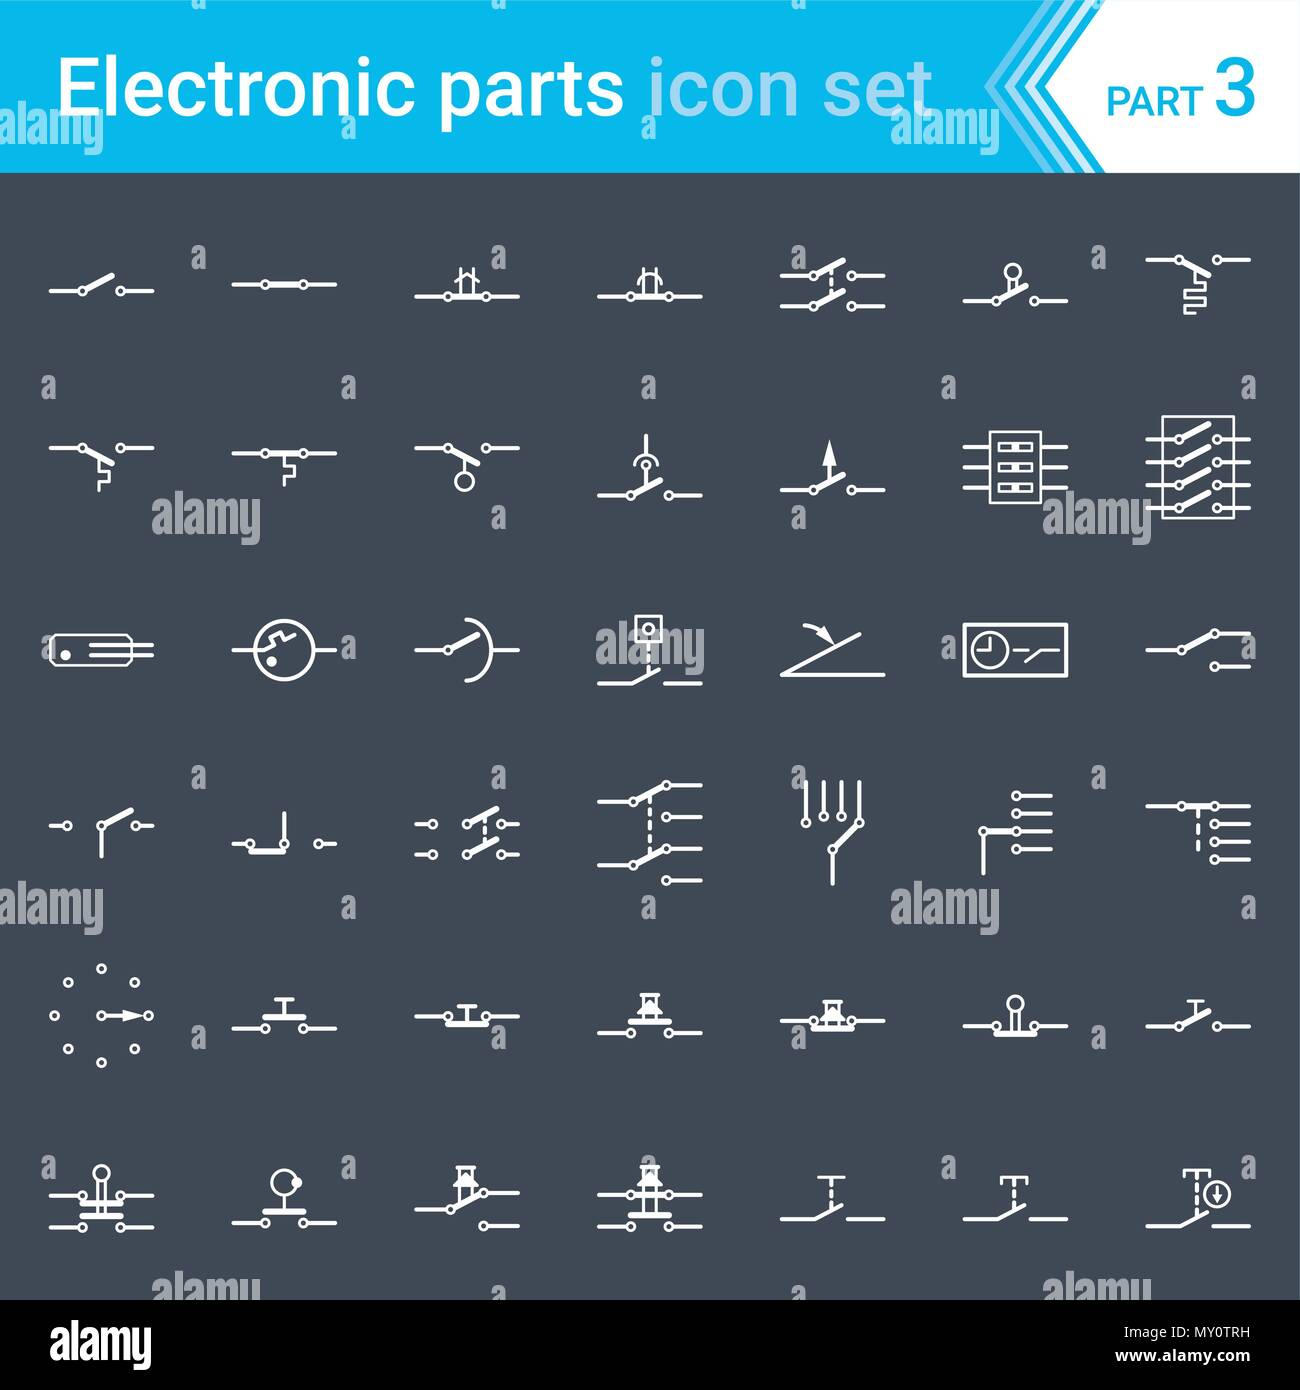 Electric Switches Stock Photos Images Alamy Switch Symbol And Electronic Icons Diagram Symbols Pushbuttons Circuit